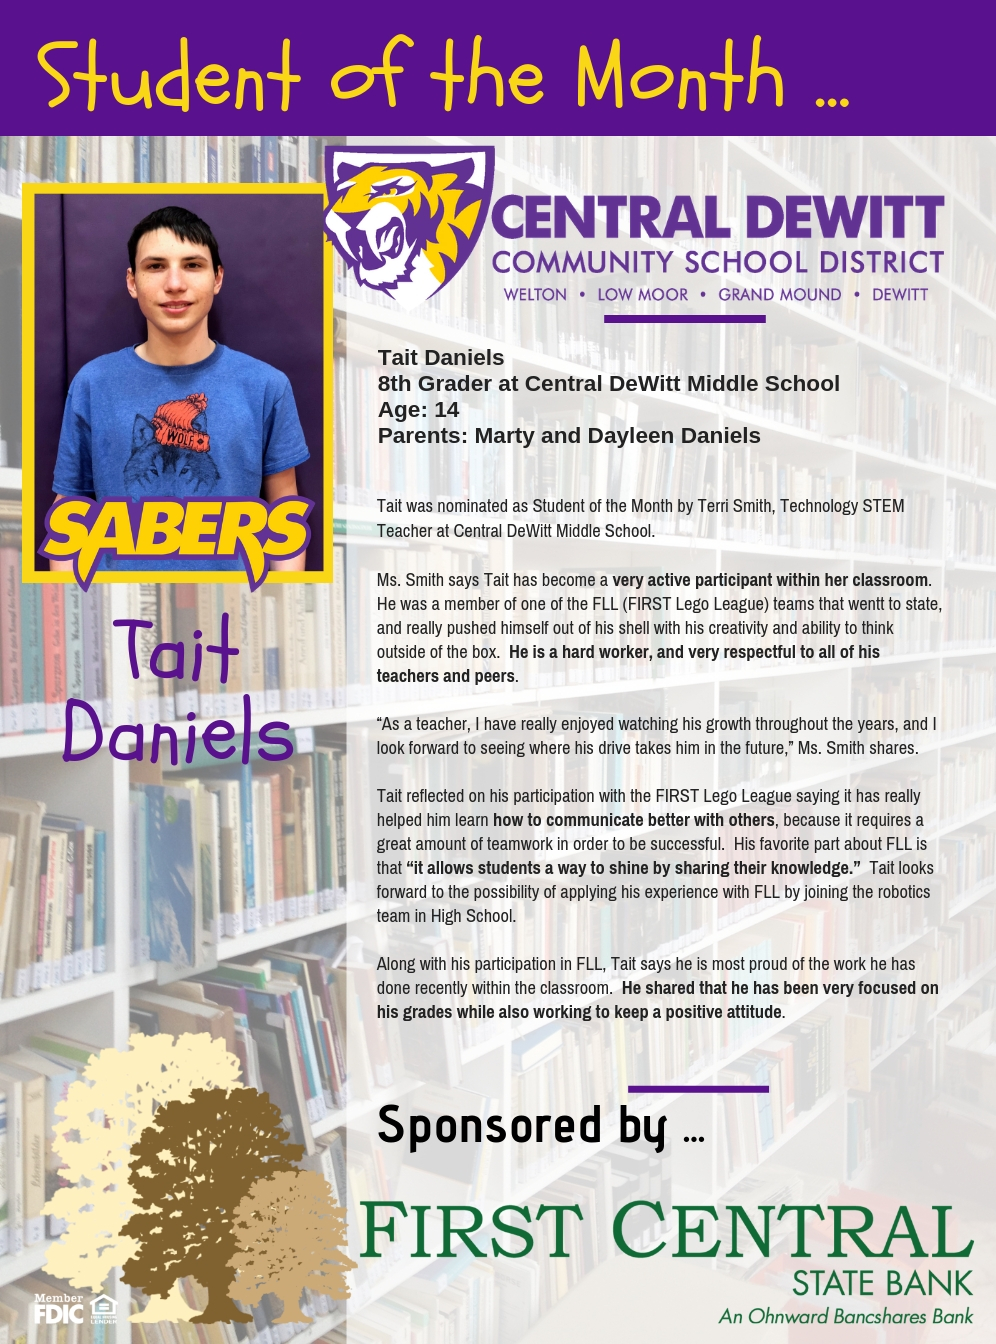 Tait Daniels recognized as student of the month